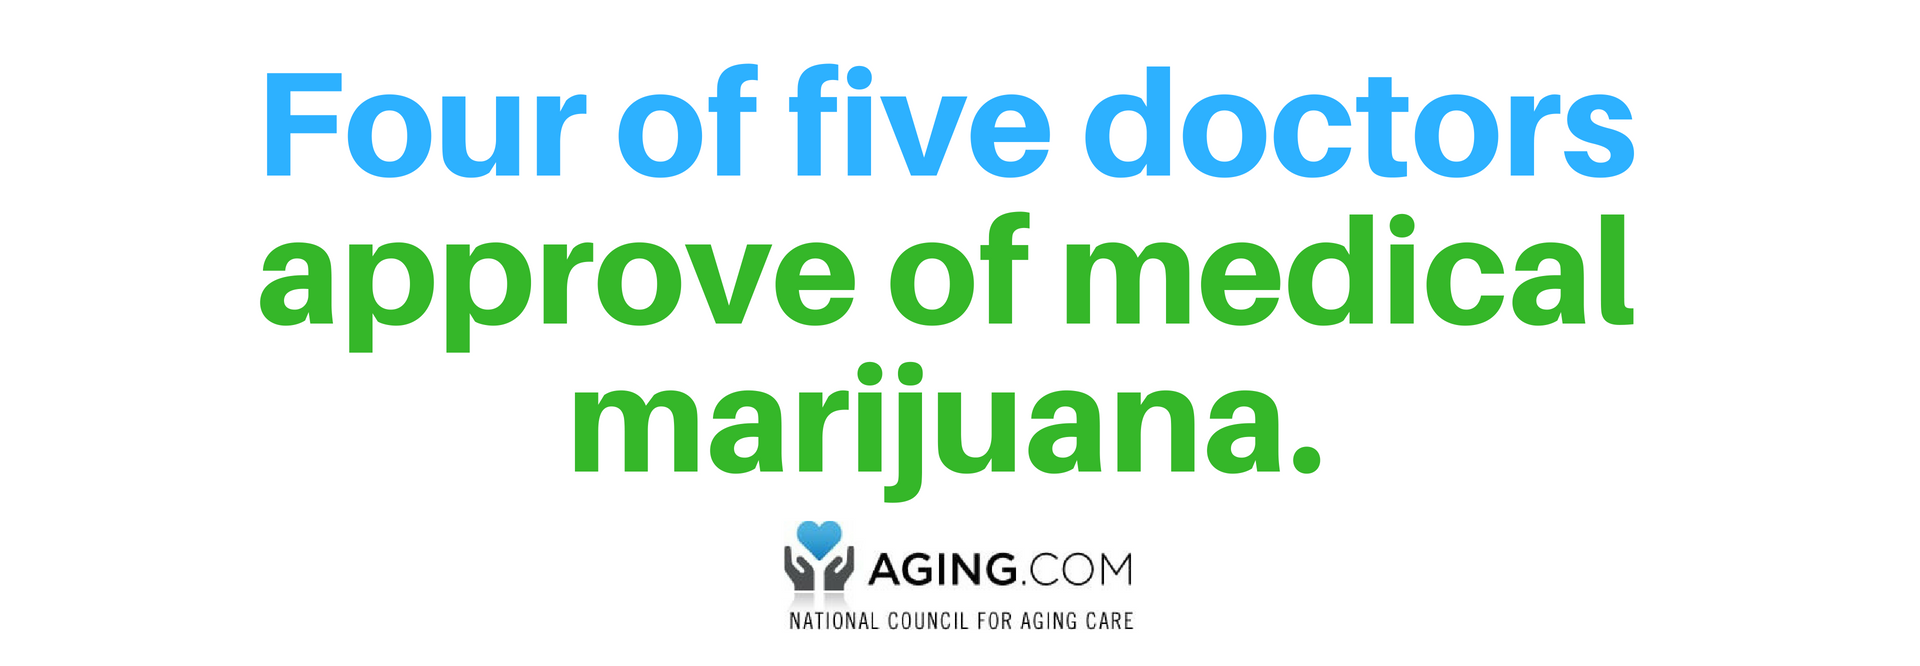 Four of five doctors approve of medical marijuana and that more than 90 percent of medical marijuana patients say that medical marijuana has helped treat their conditions..png